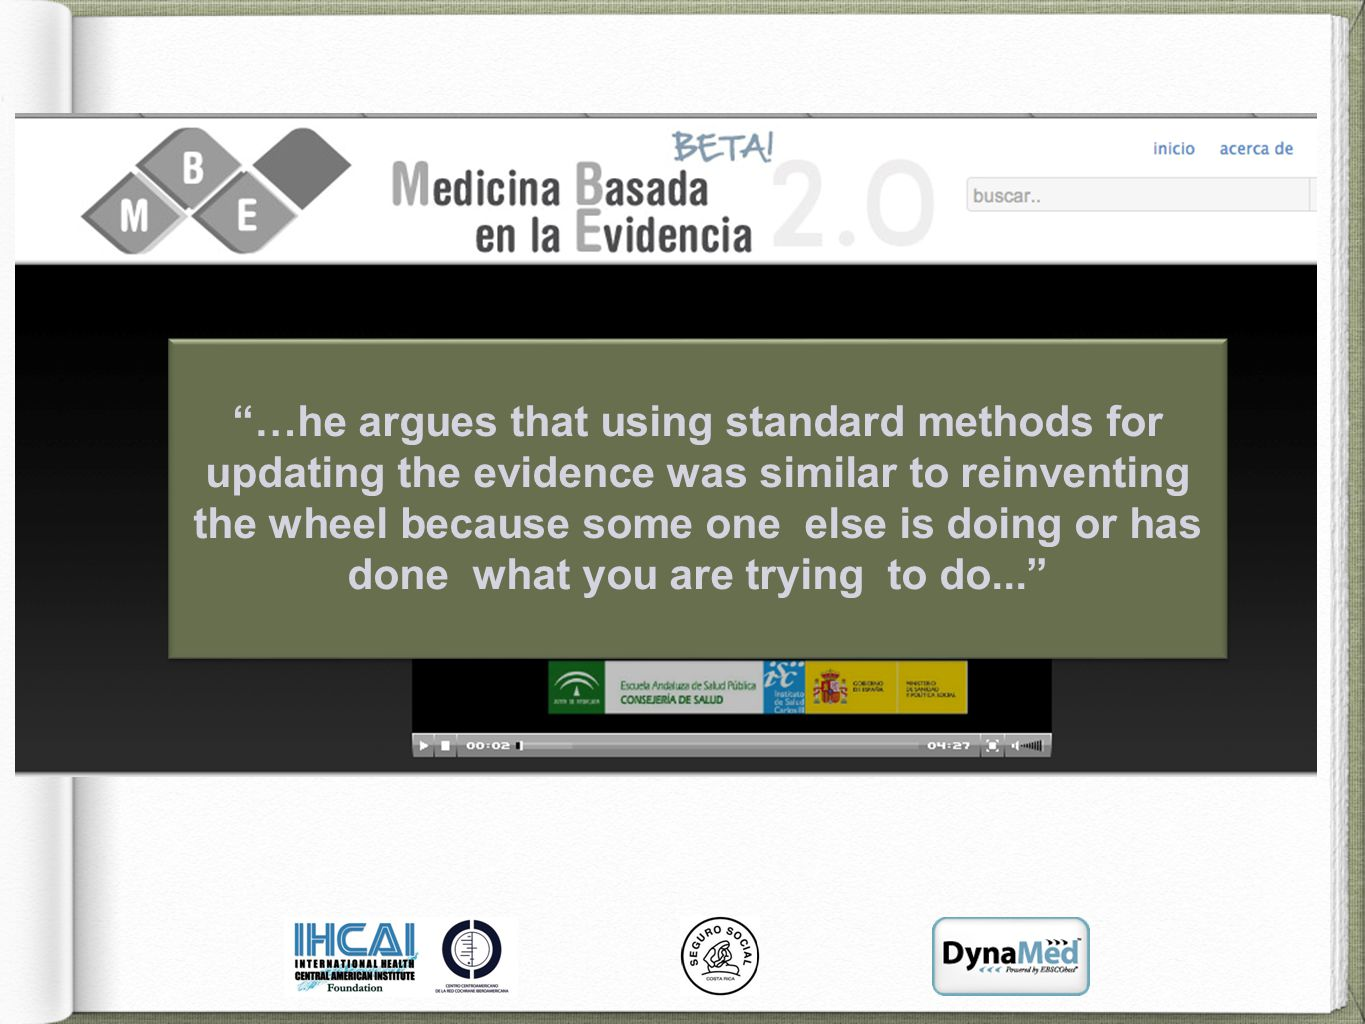 …he argues that using standard methods for updating the evidence was similar to reinventing the wheel because some one else is doing or has done what you are trying to do... …he argues that using standard methods for updating the evidence was similar to reinventing the wheel because some one else is doing or has done what you are trying to do...